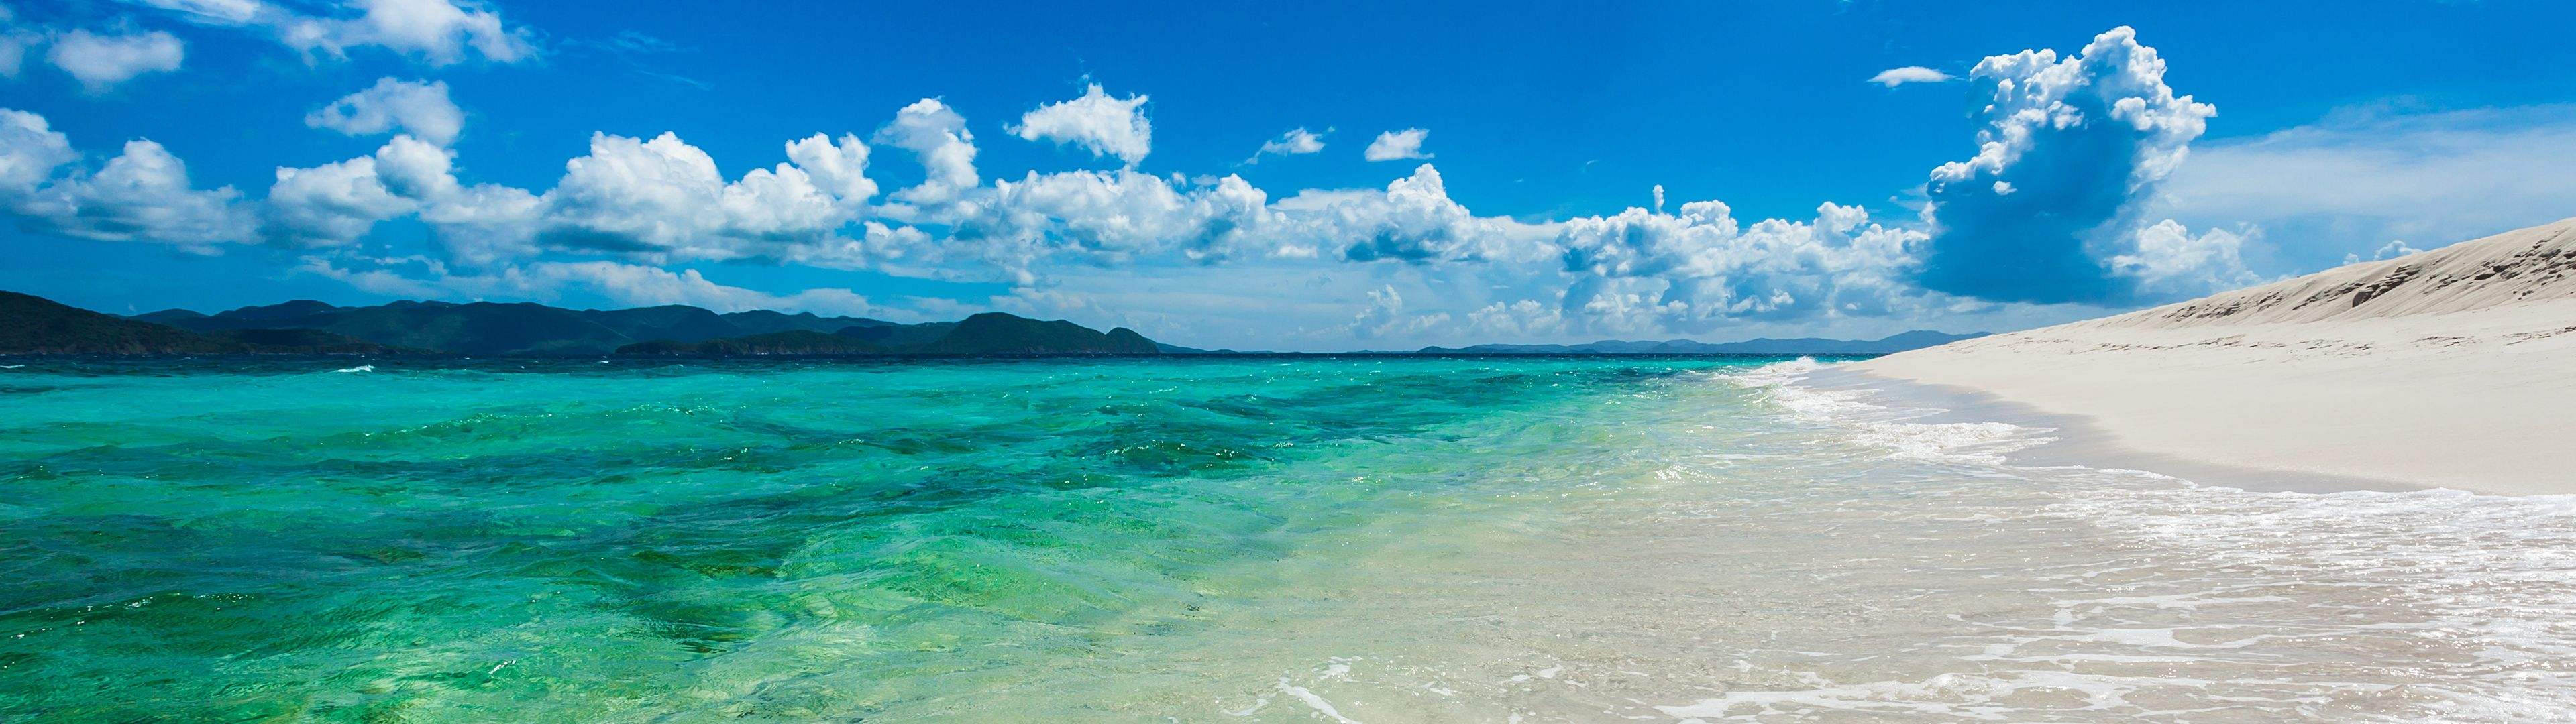 Hd wallpaper beach - Find This Pin And More On Hd Wallpapers By Receptynakazhdyjden